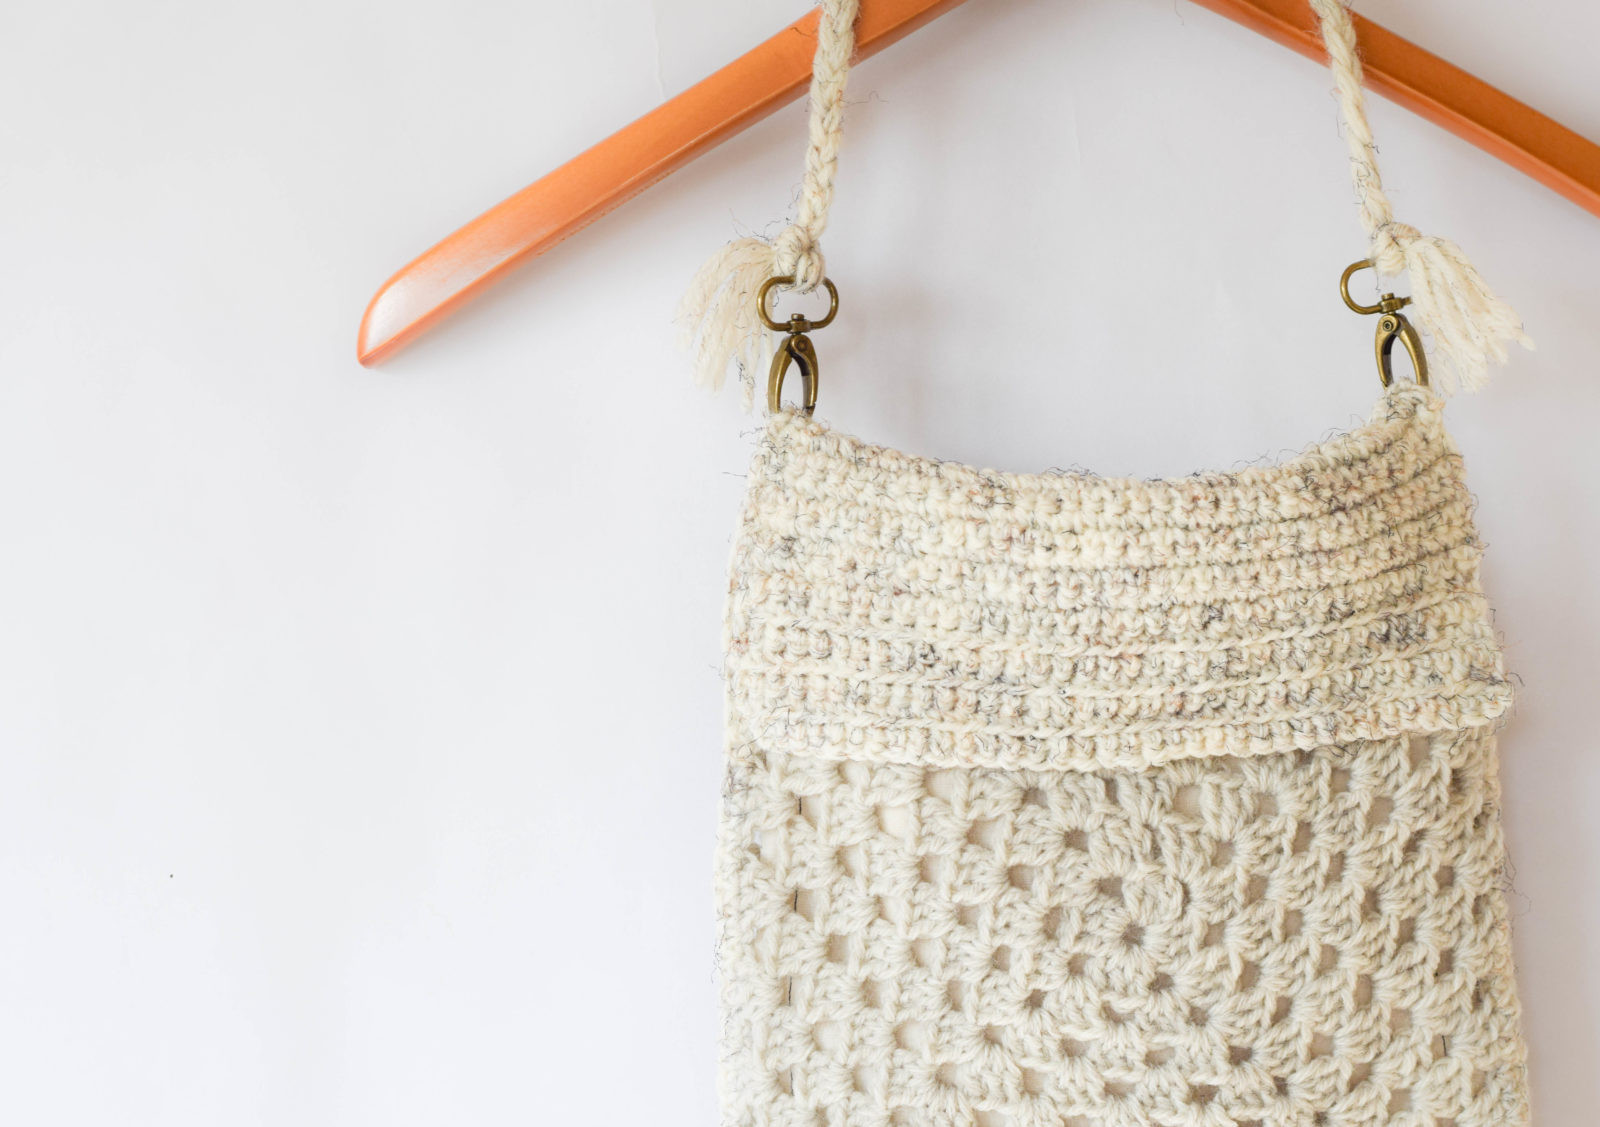 Crochet Patterns for Bags Inspirational Boho Fringe Granny Square Crochet Purse – Mama In A Stitch Of Incredible 40 Pics Crochet Patterns for Bags